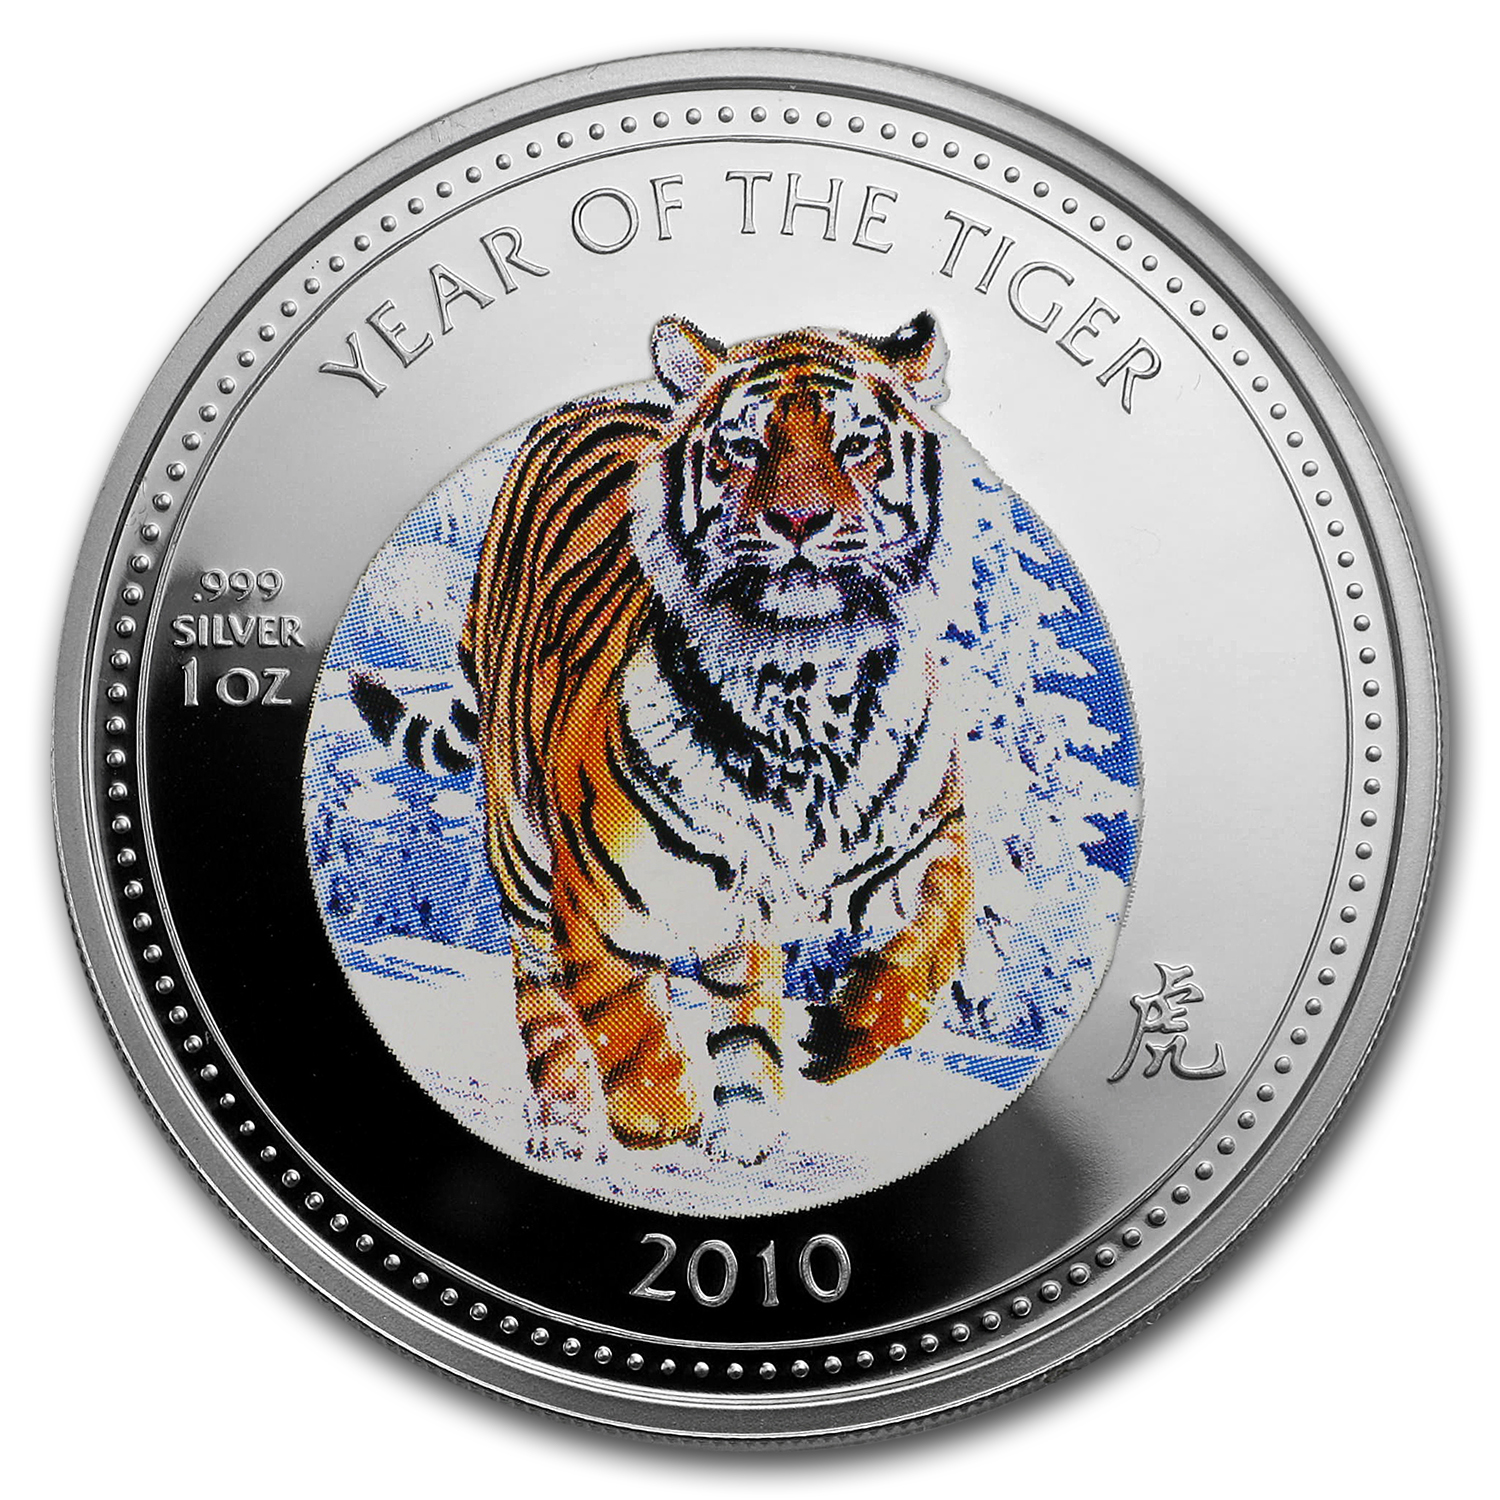 2010 Lunar Year of the Tiger 1 oz Silver Coin (w/Paw Print Box)